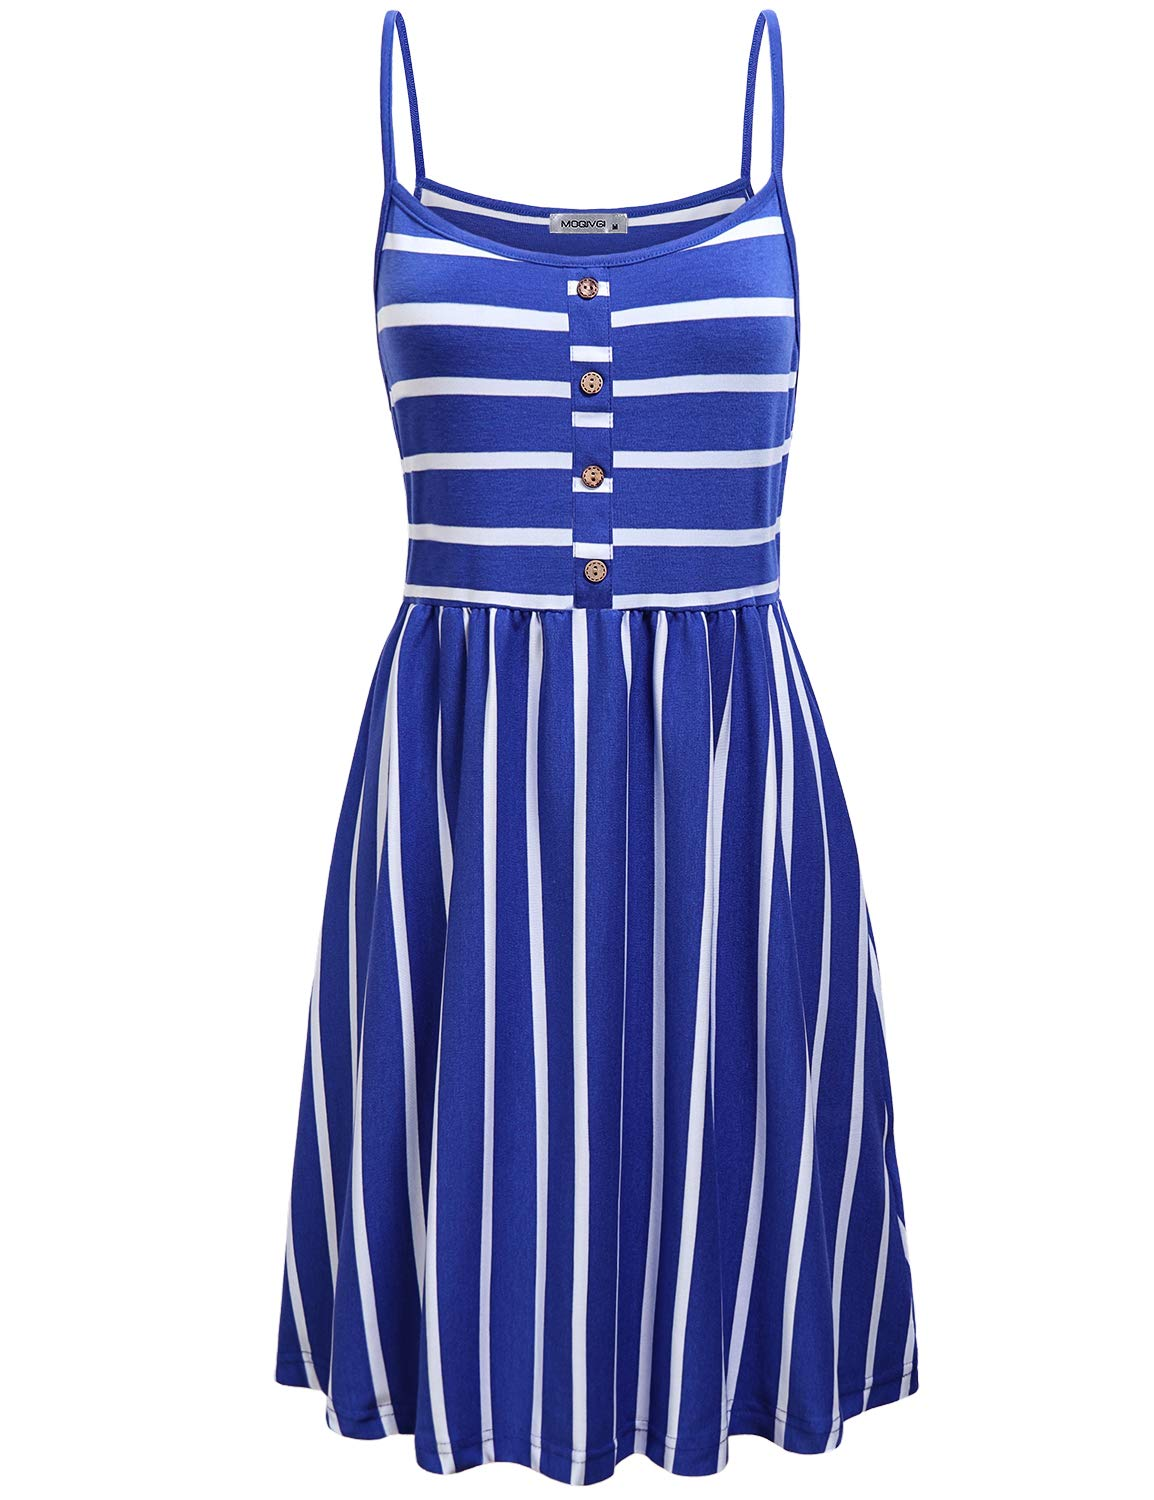 Available at Amazon: MOQIVGI Women's Spaghetti Strap Button Detail Pleated Summer Casual Stripe Dresses